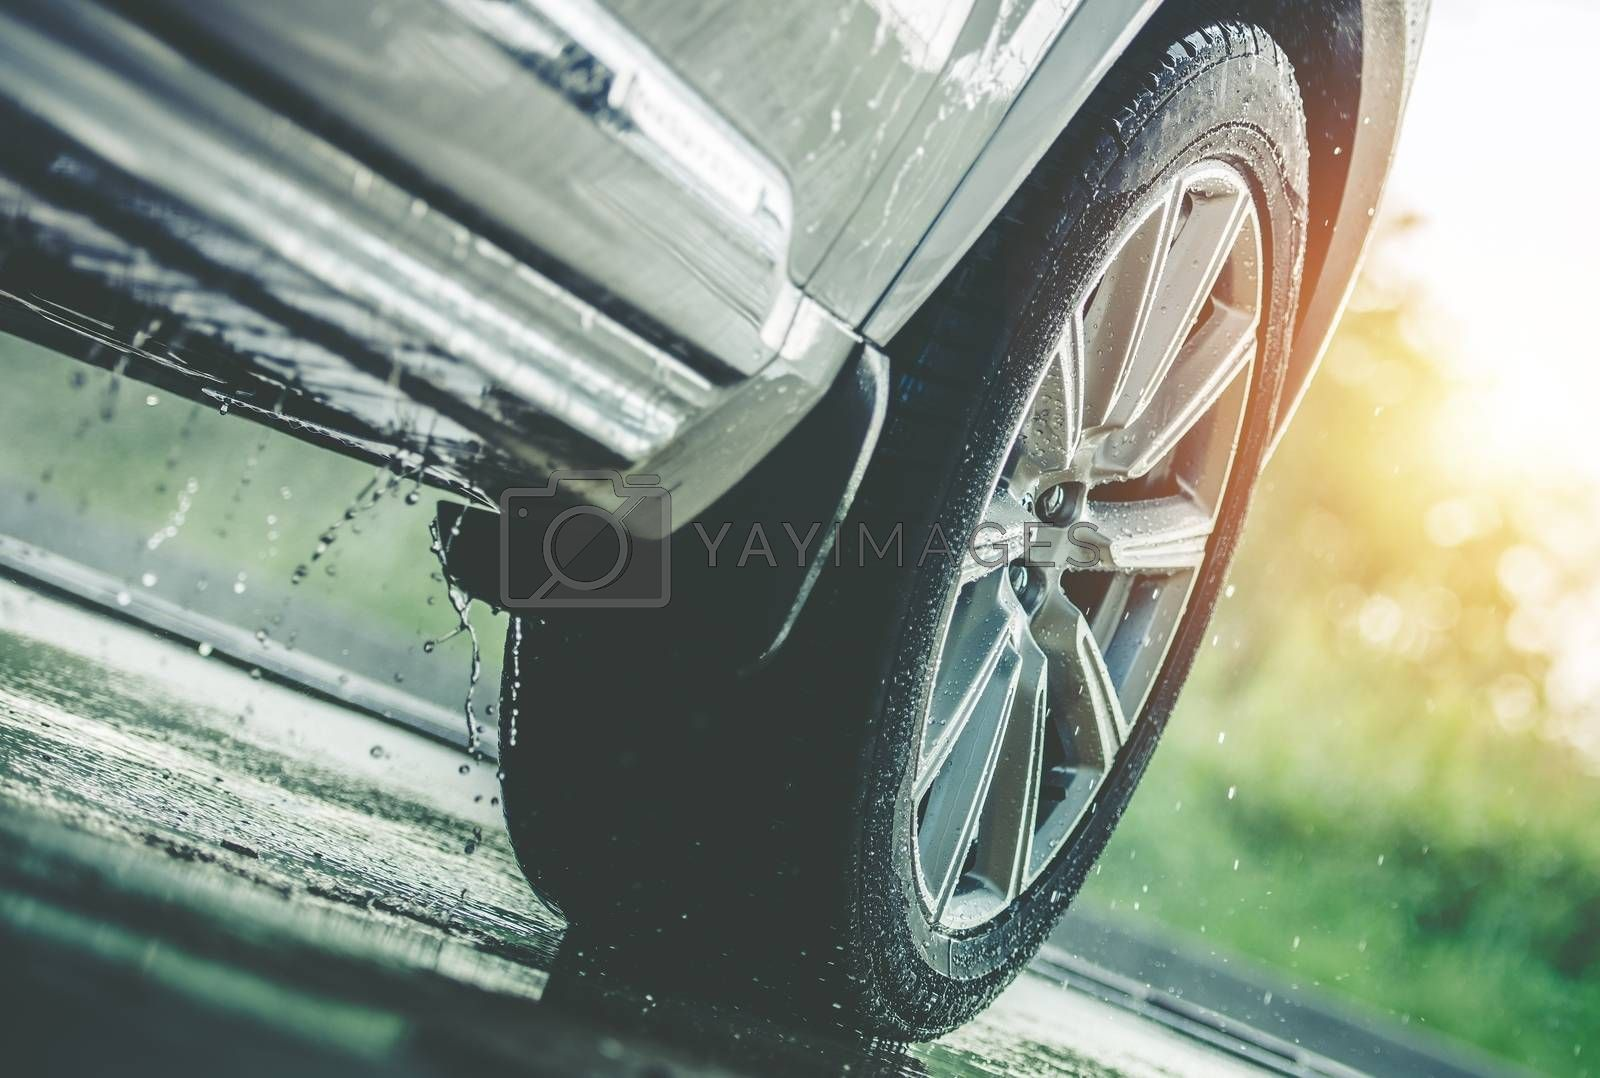 Royalty free image of Car Driving in the Rain by welcomia